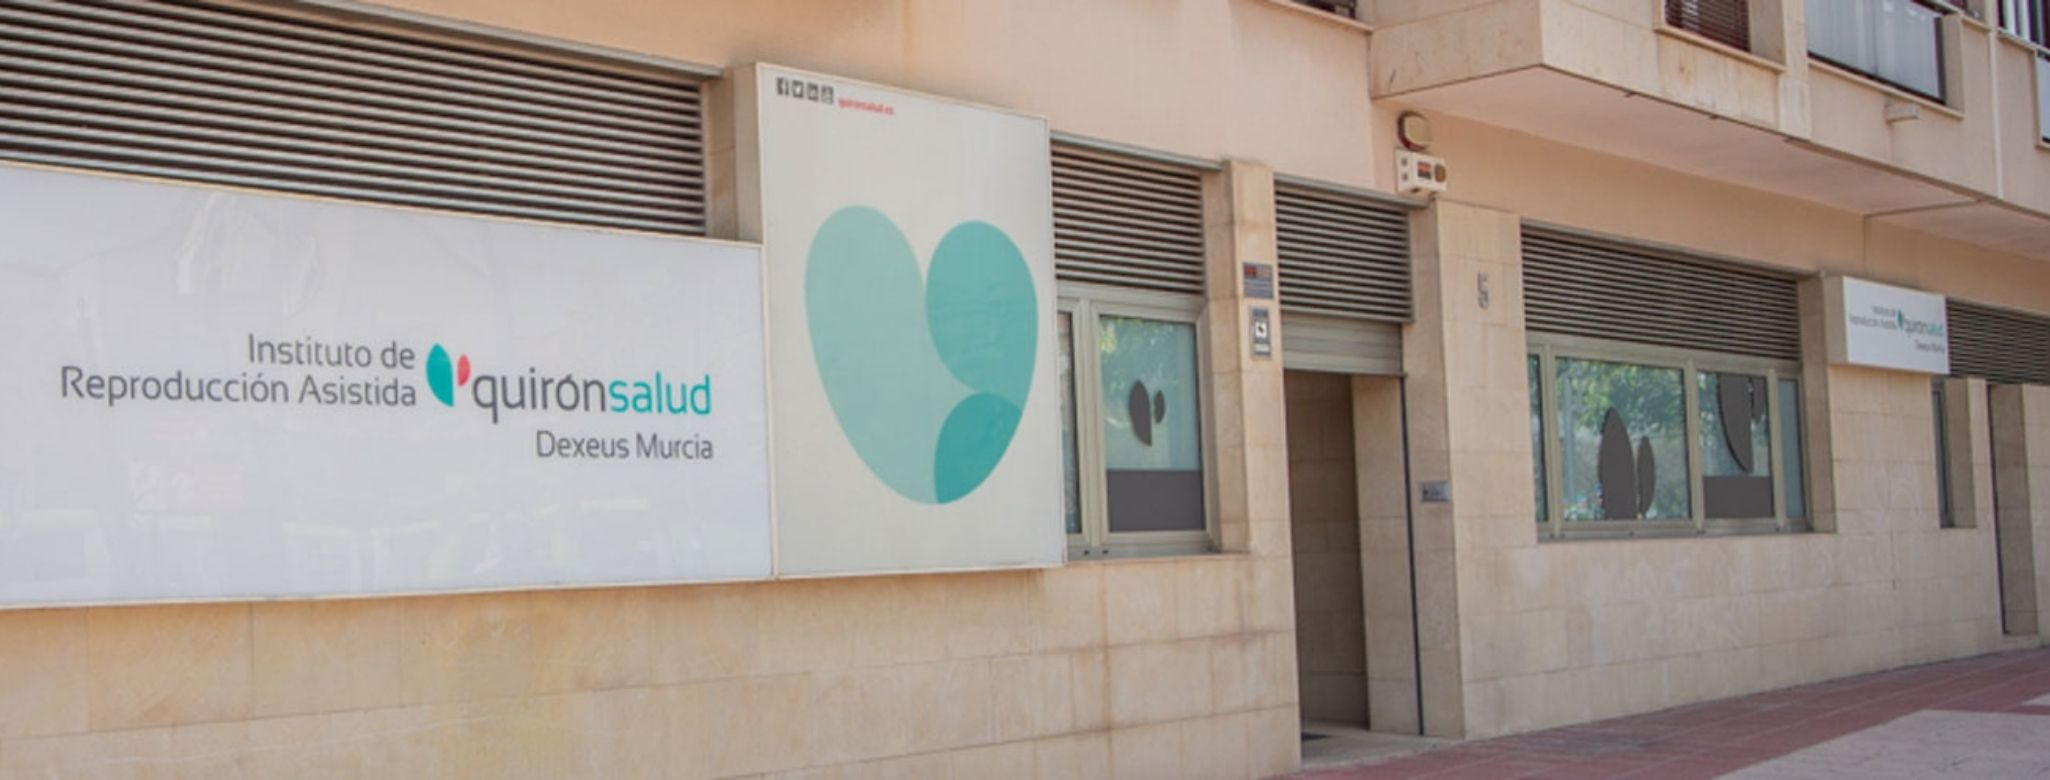 entree quironsalud